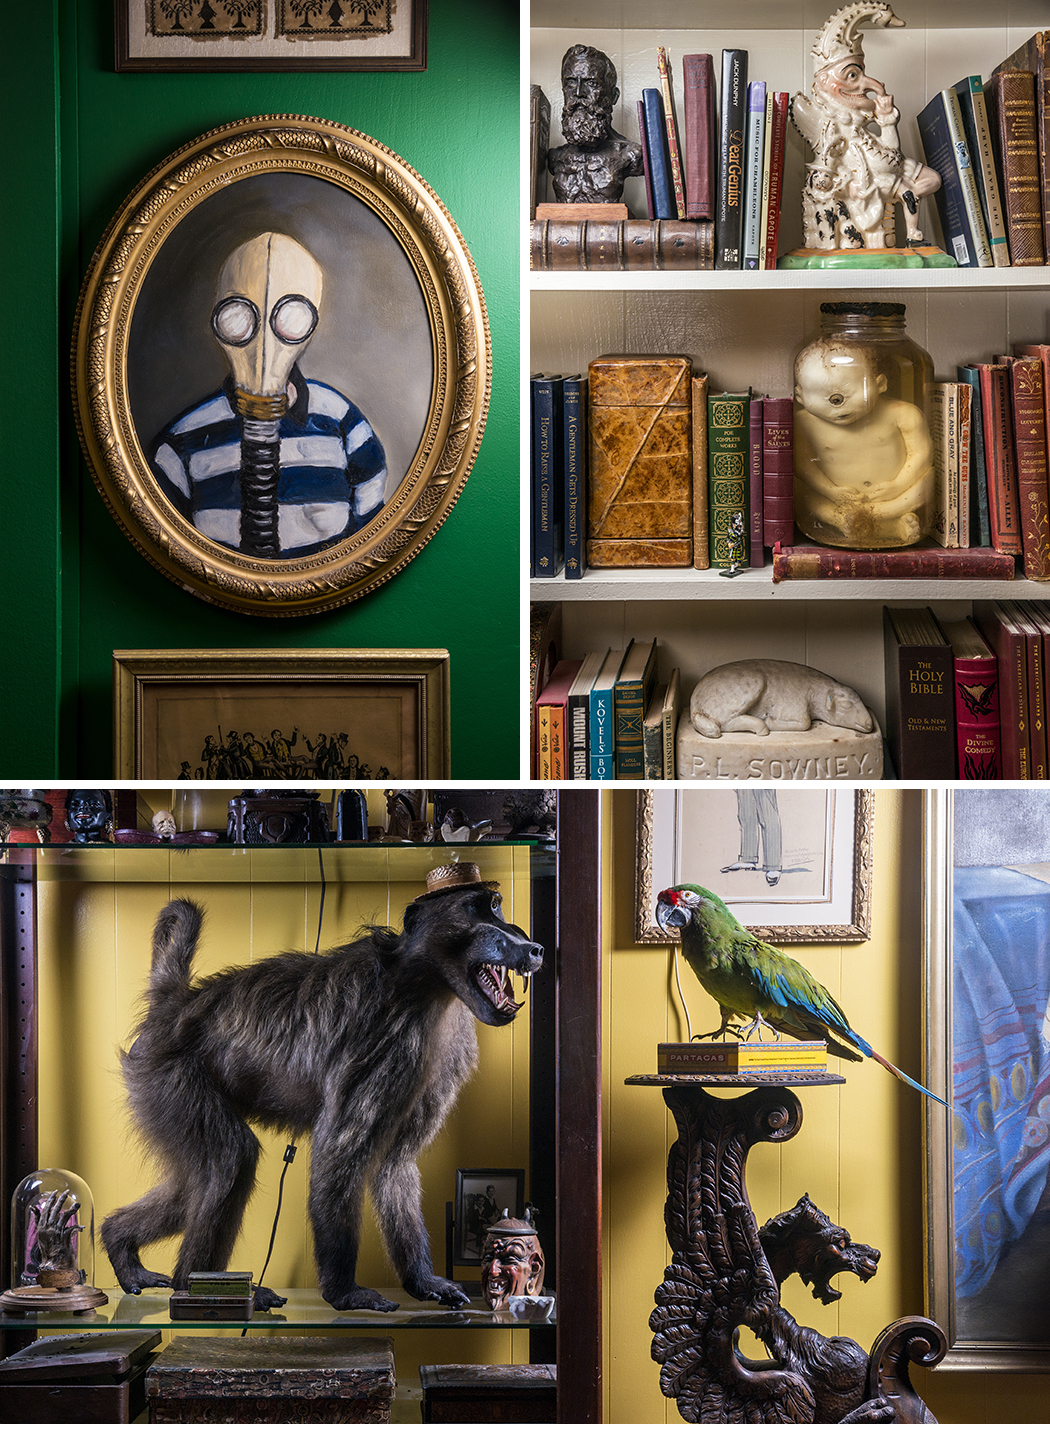 """Clockwise from top right: Shelves in the Bell-Hinkle home showcase possessions, including Bell's """"cyclops baby"""" in a jar, a carnival sideshow prop. Hinkle and Bell have collected enough antique taxidermy to stock a natural history museum. Hinkle has been collecting paintings for many years, and he has an eye for arranging them. (Photos by Danny Fulgencio)"""